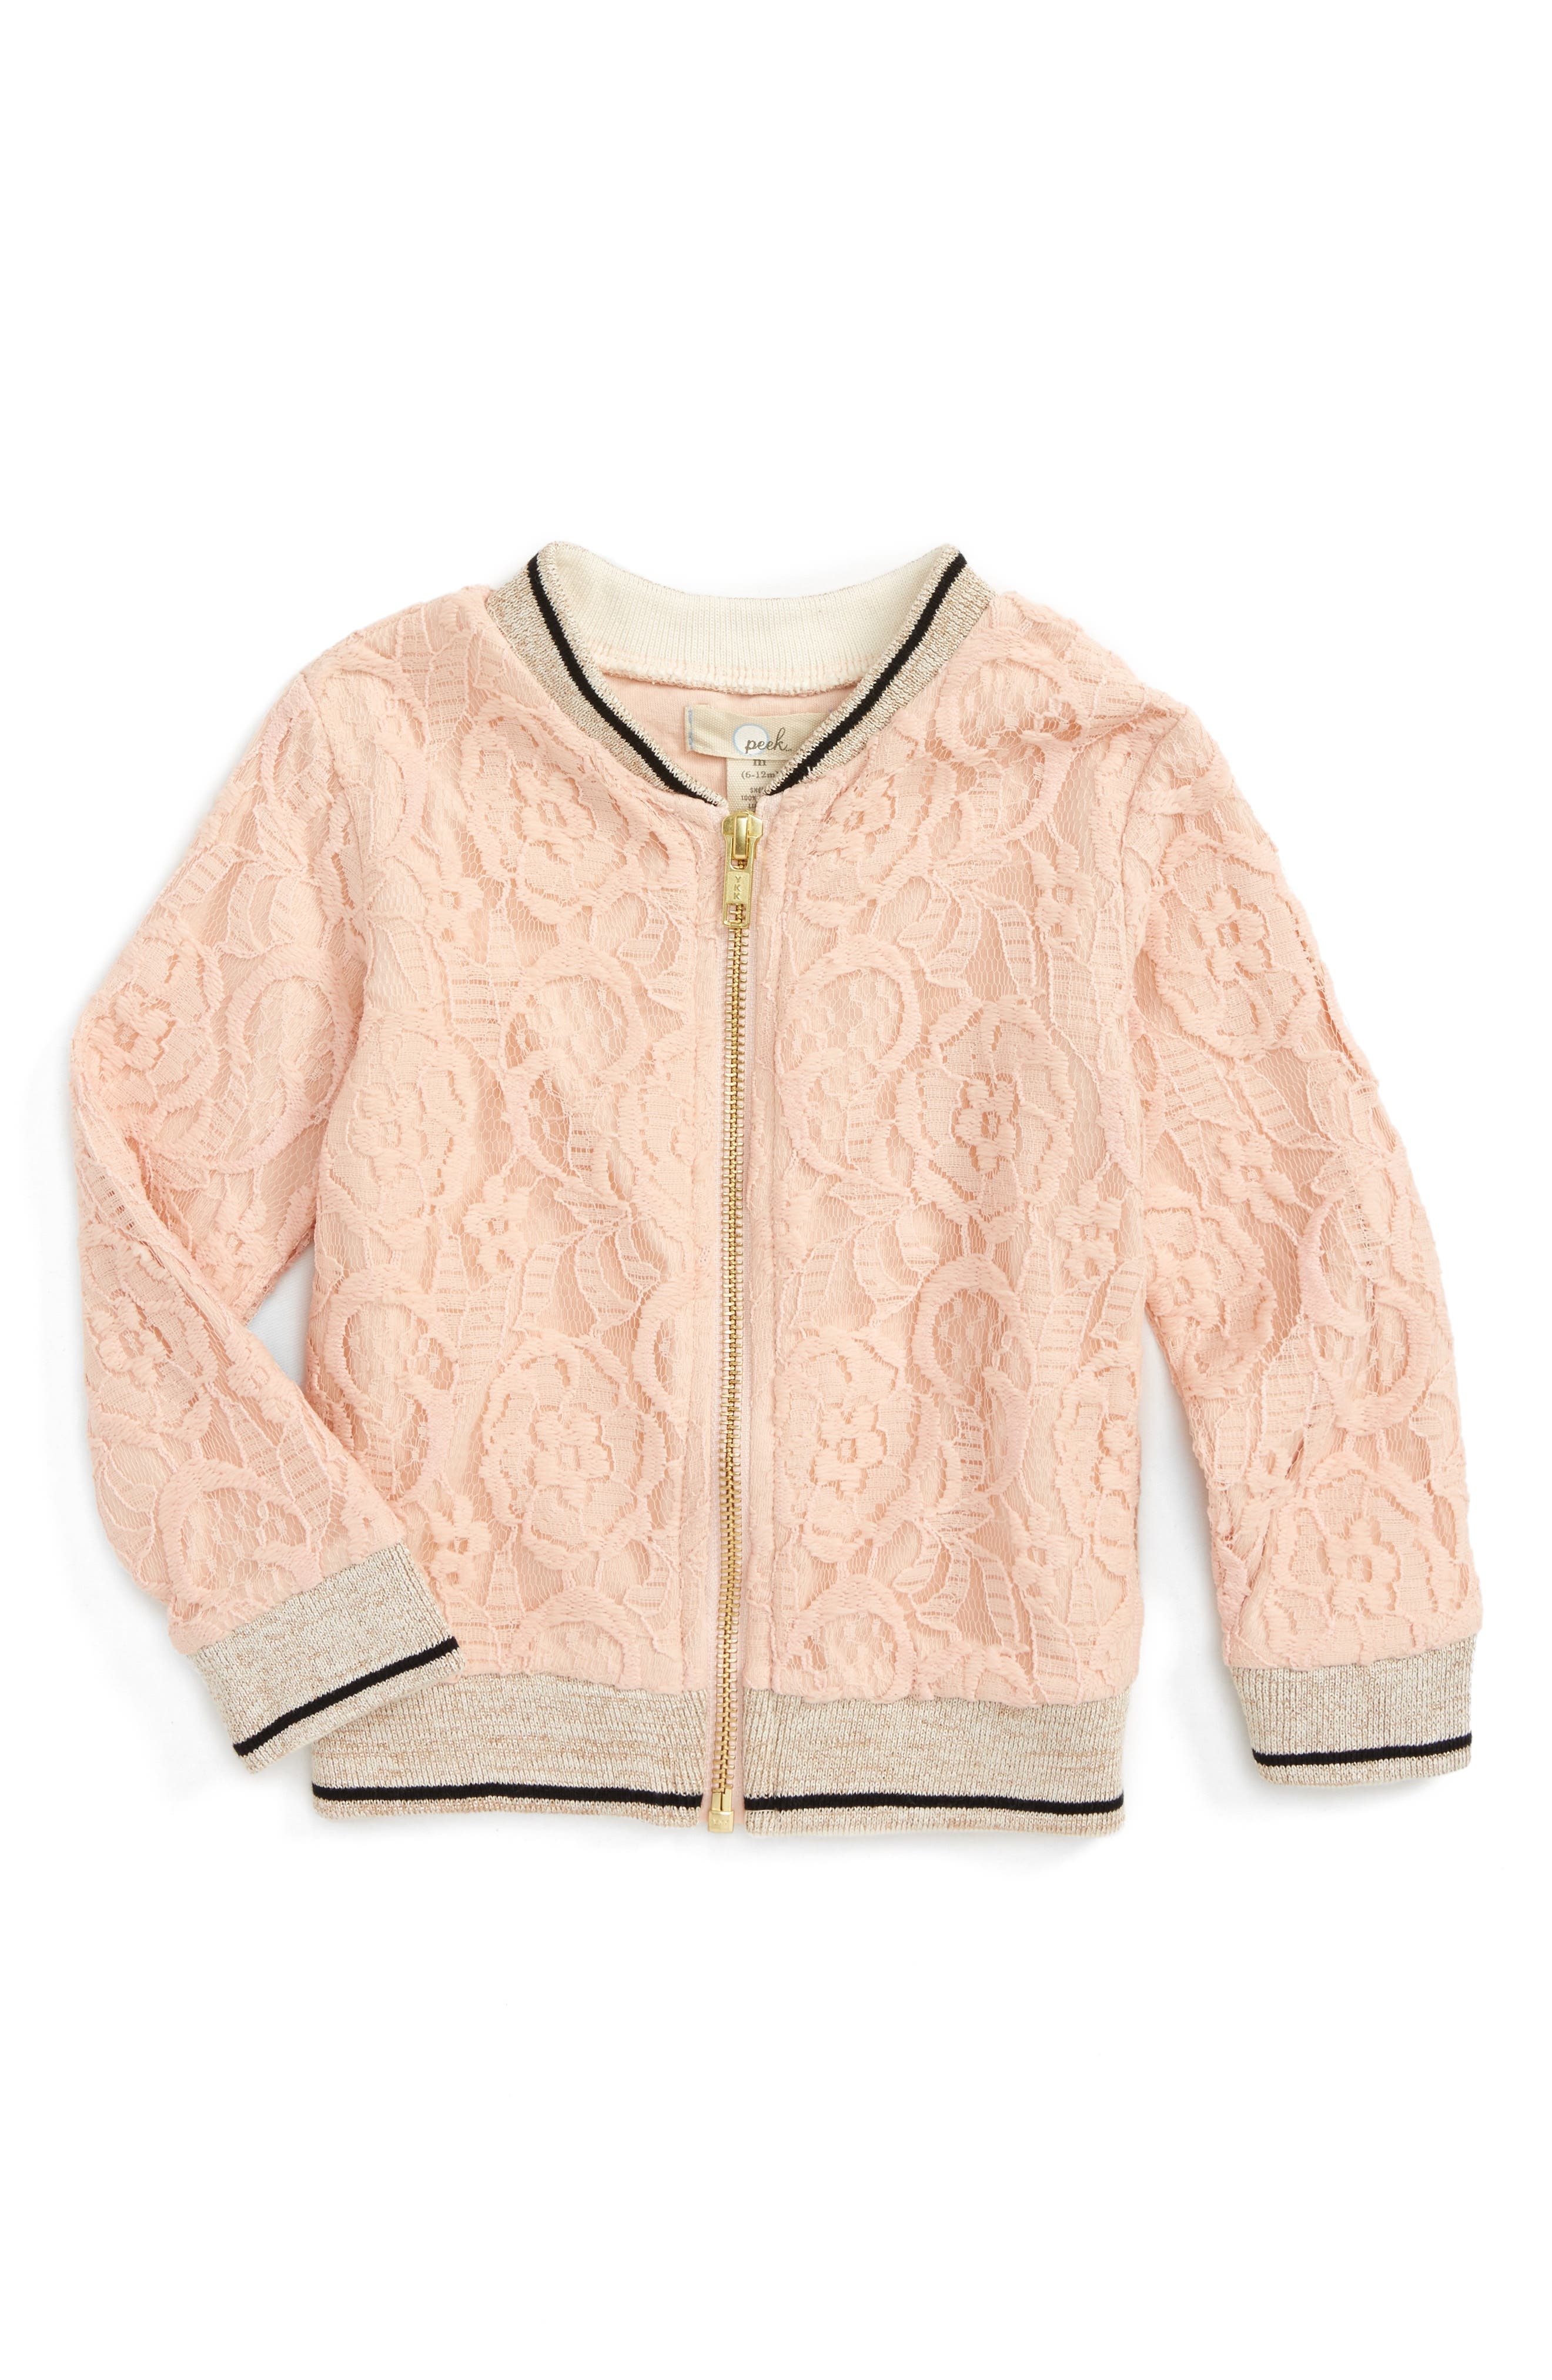 Peek Lace Bomber Jacket (Baby Girls)